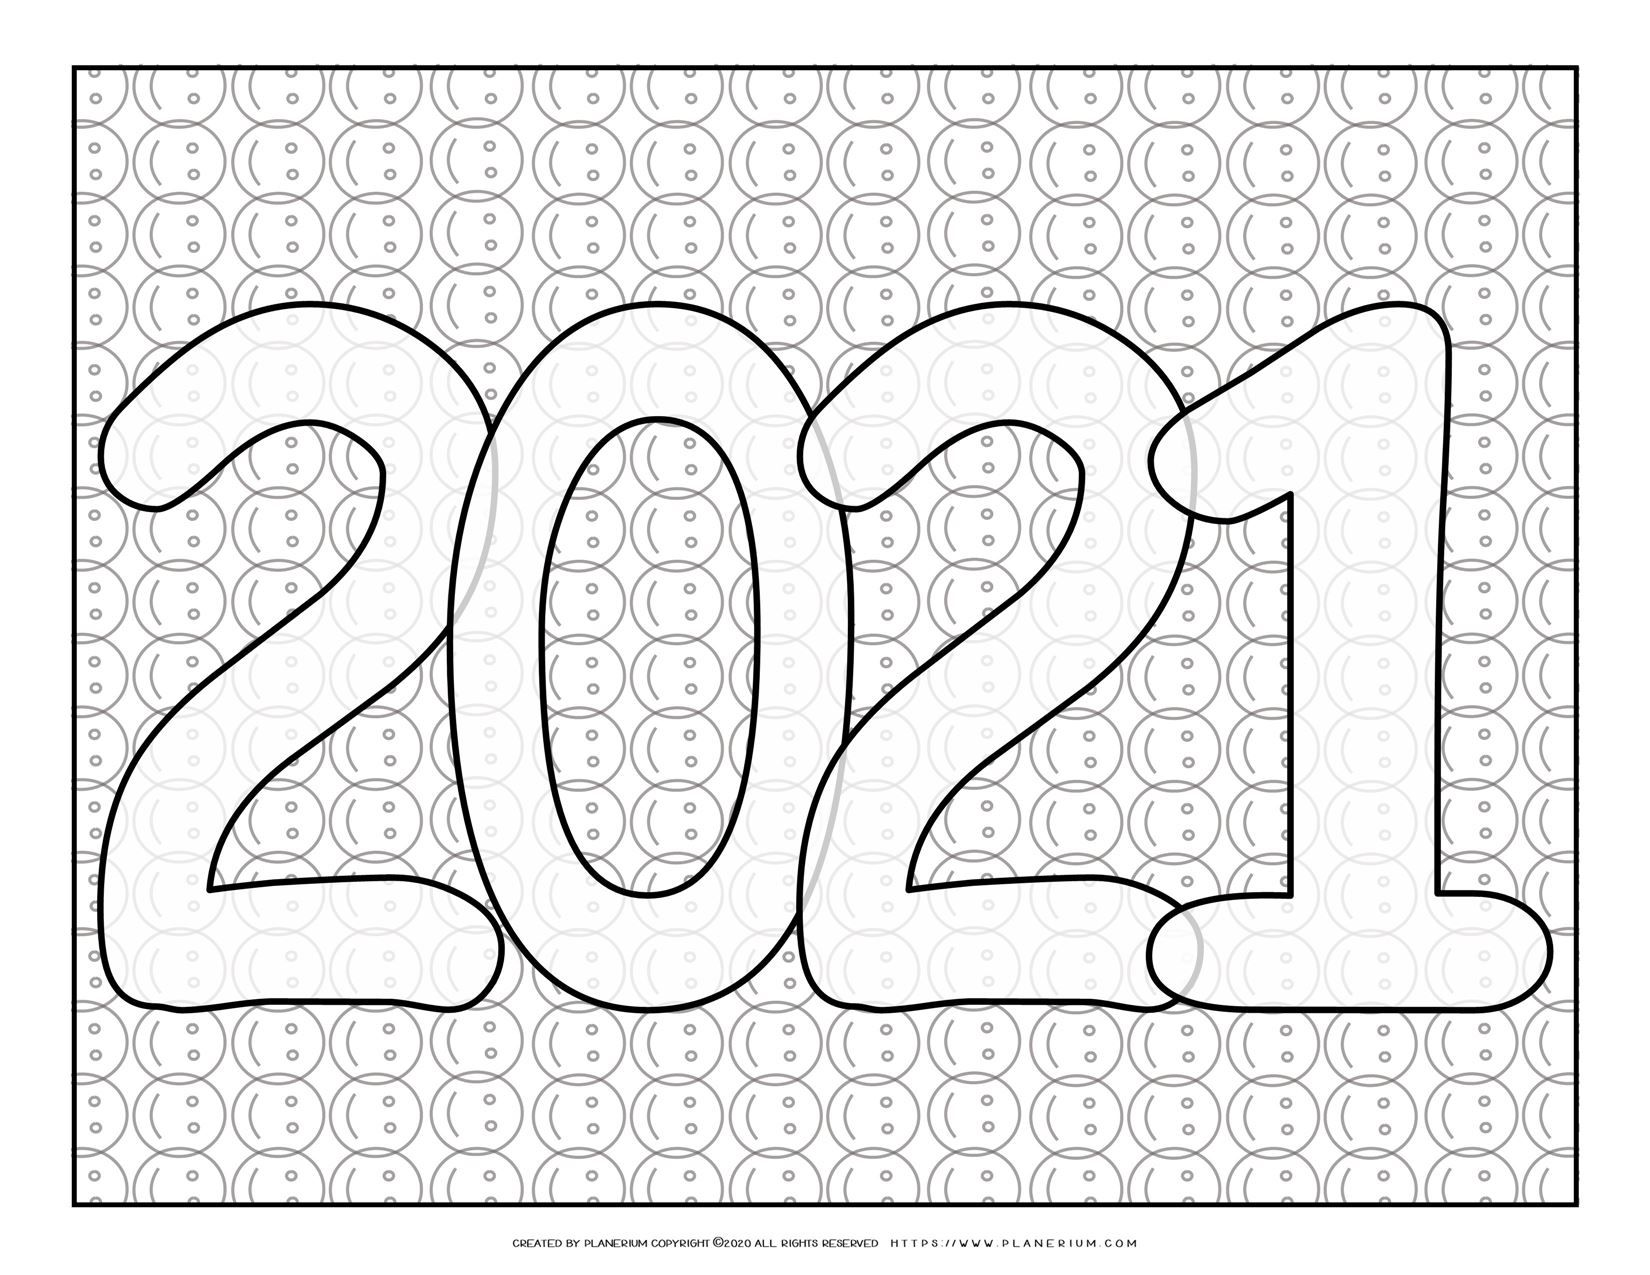 New Year Coloring Pages 2021 Smileys Sign Planerium Coloring Pages New Year Coloring Pages Cool Coloring Pages [ 1275 x 1650 Pixel ]